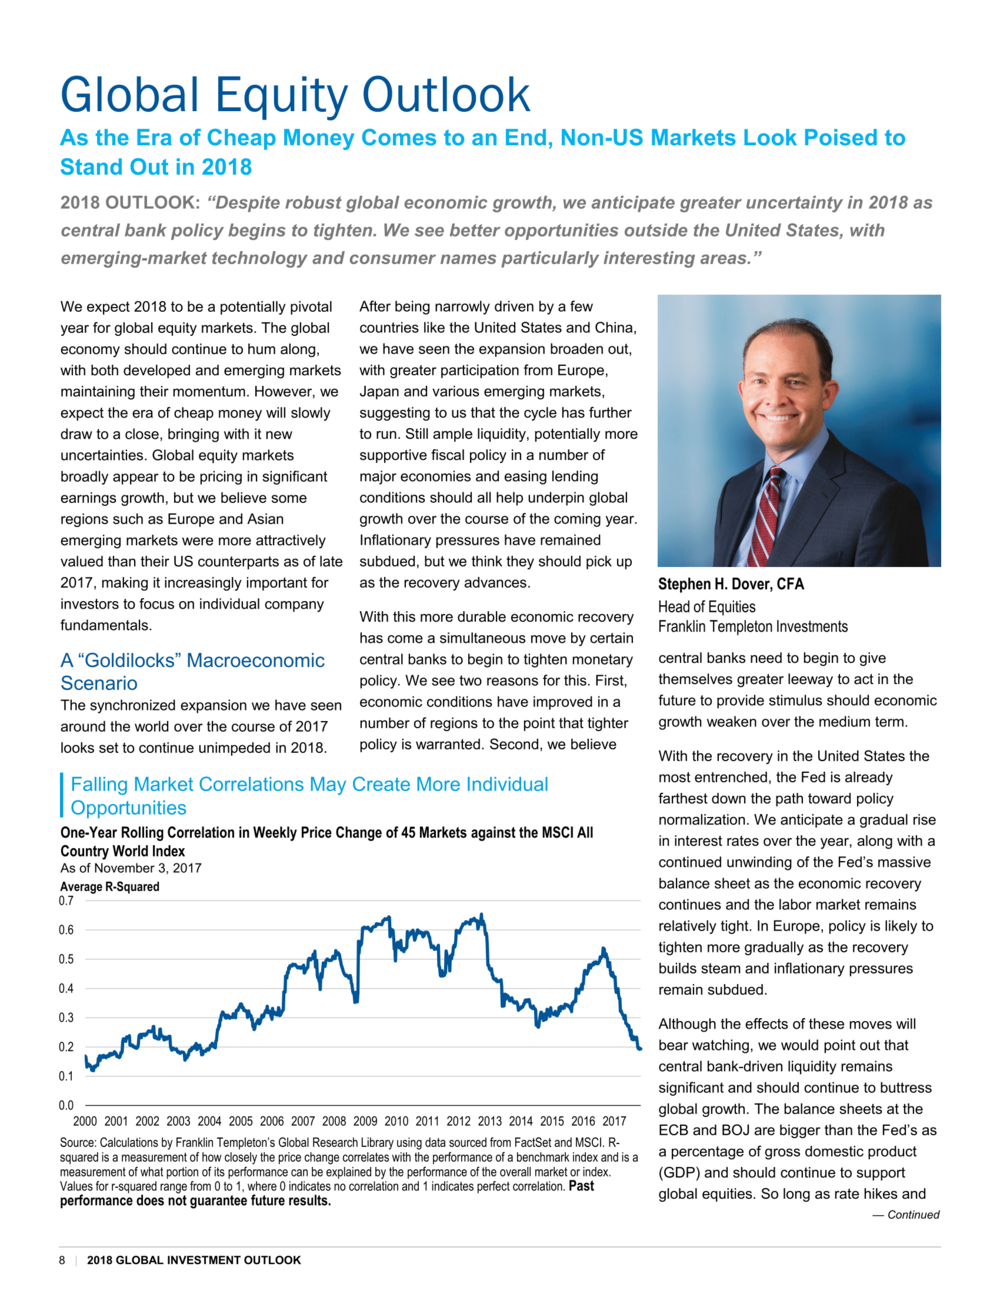 Franklin Templeton 2018 Outlook-10.png